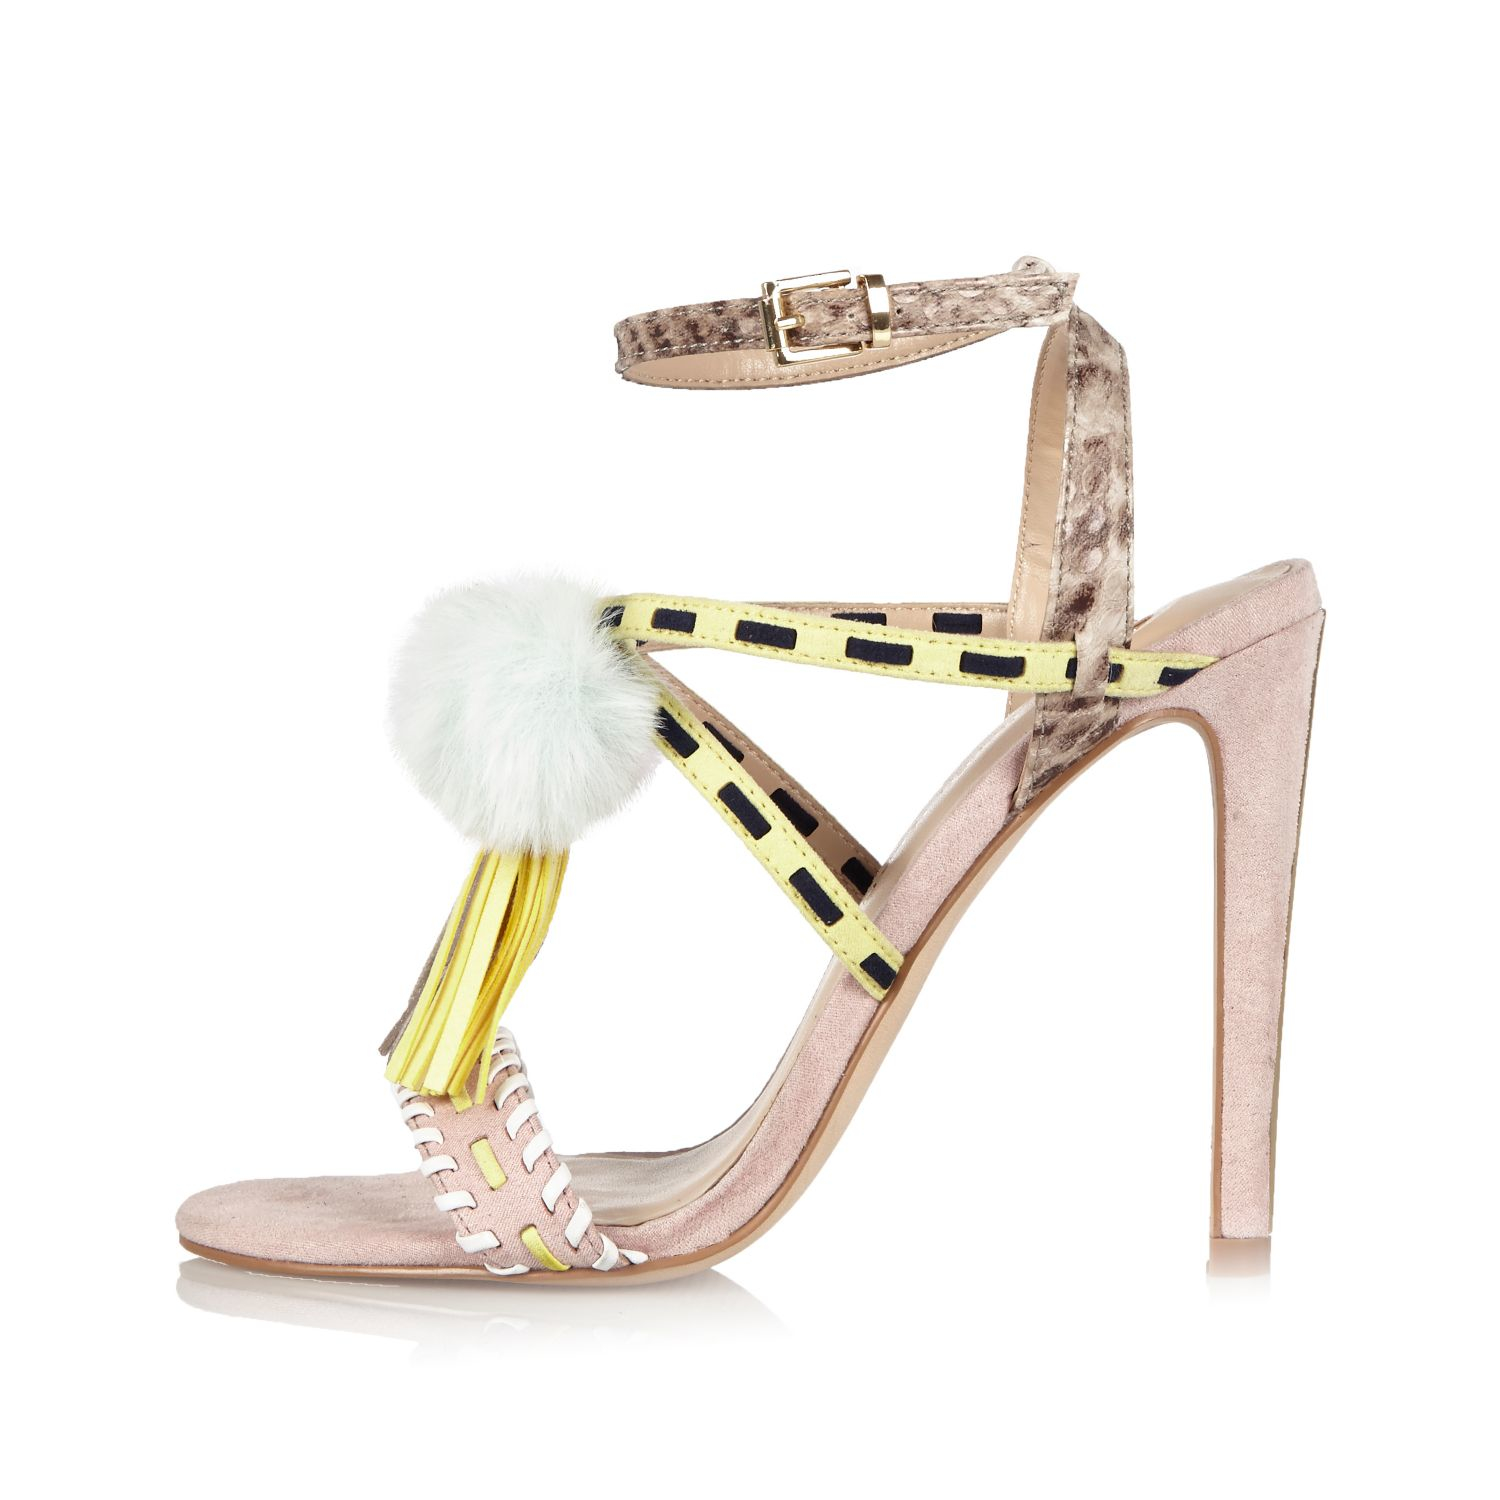 766b77e0b443 River Island Light Pink Suede Pom Pom Sandals in Pink - Lyst